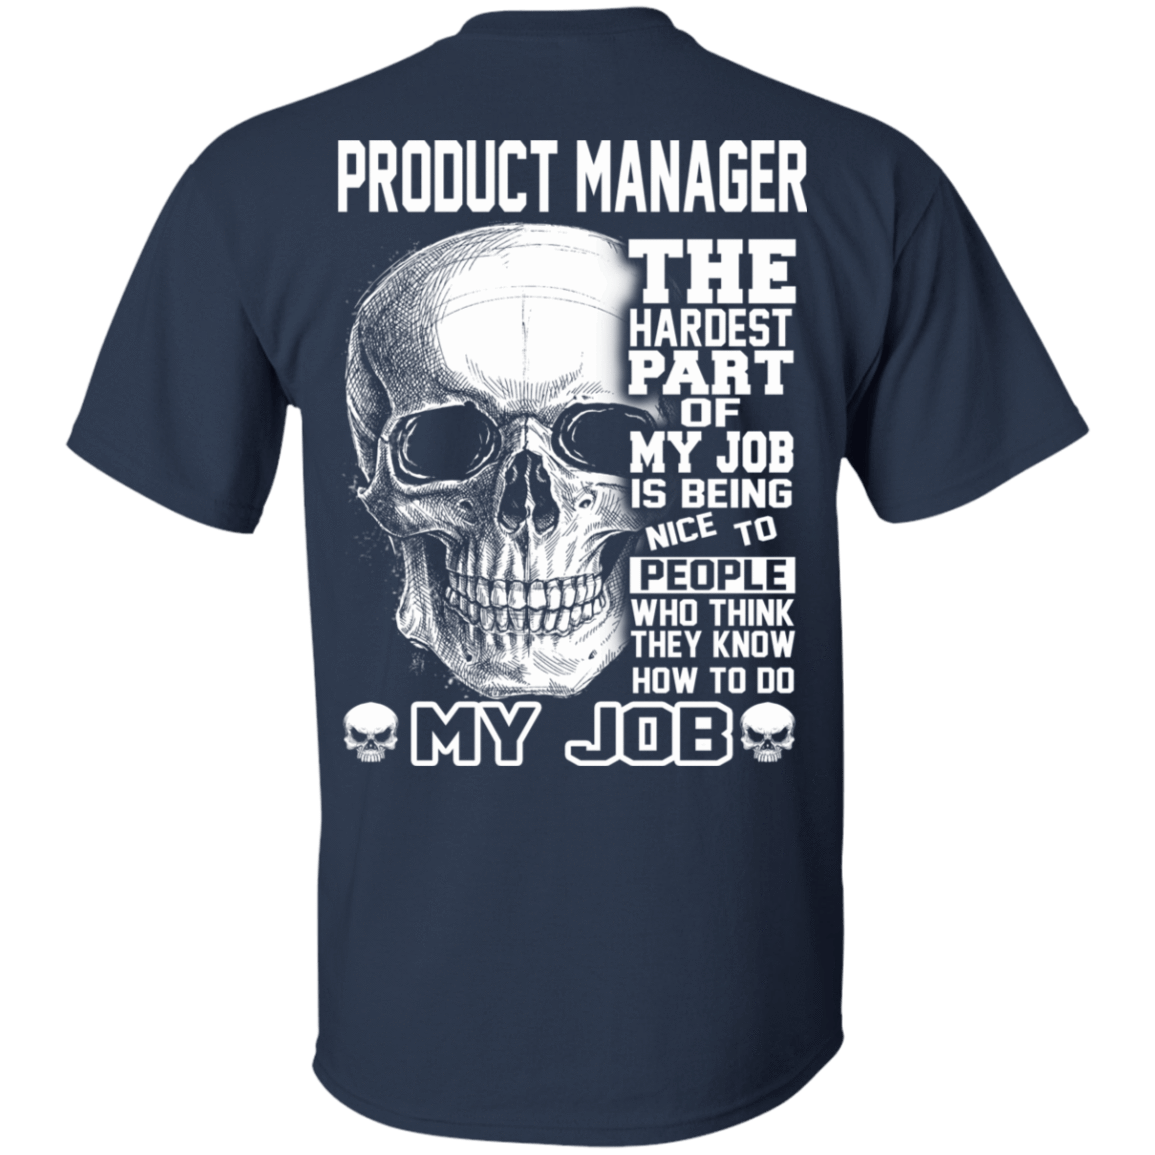 Product Manager The Hardest Part Of My Job 22-111-71881740-250 - Tee Ript